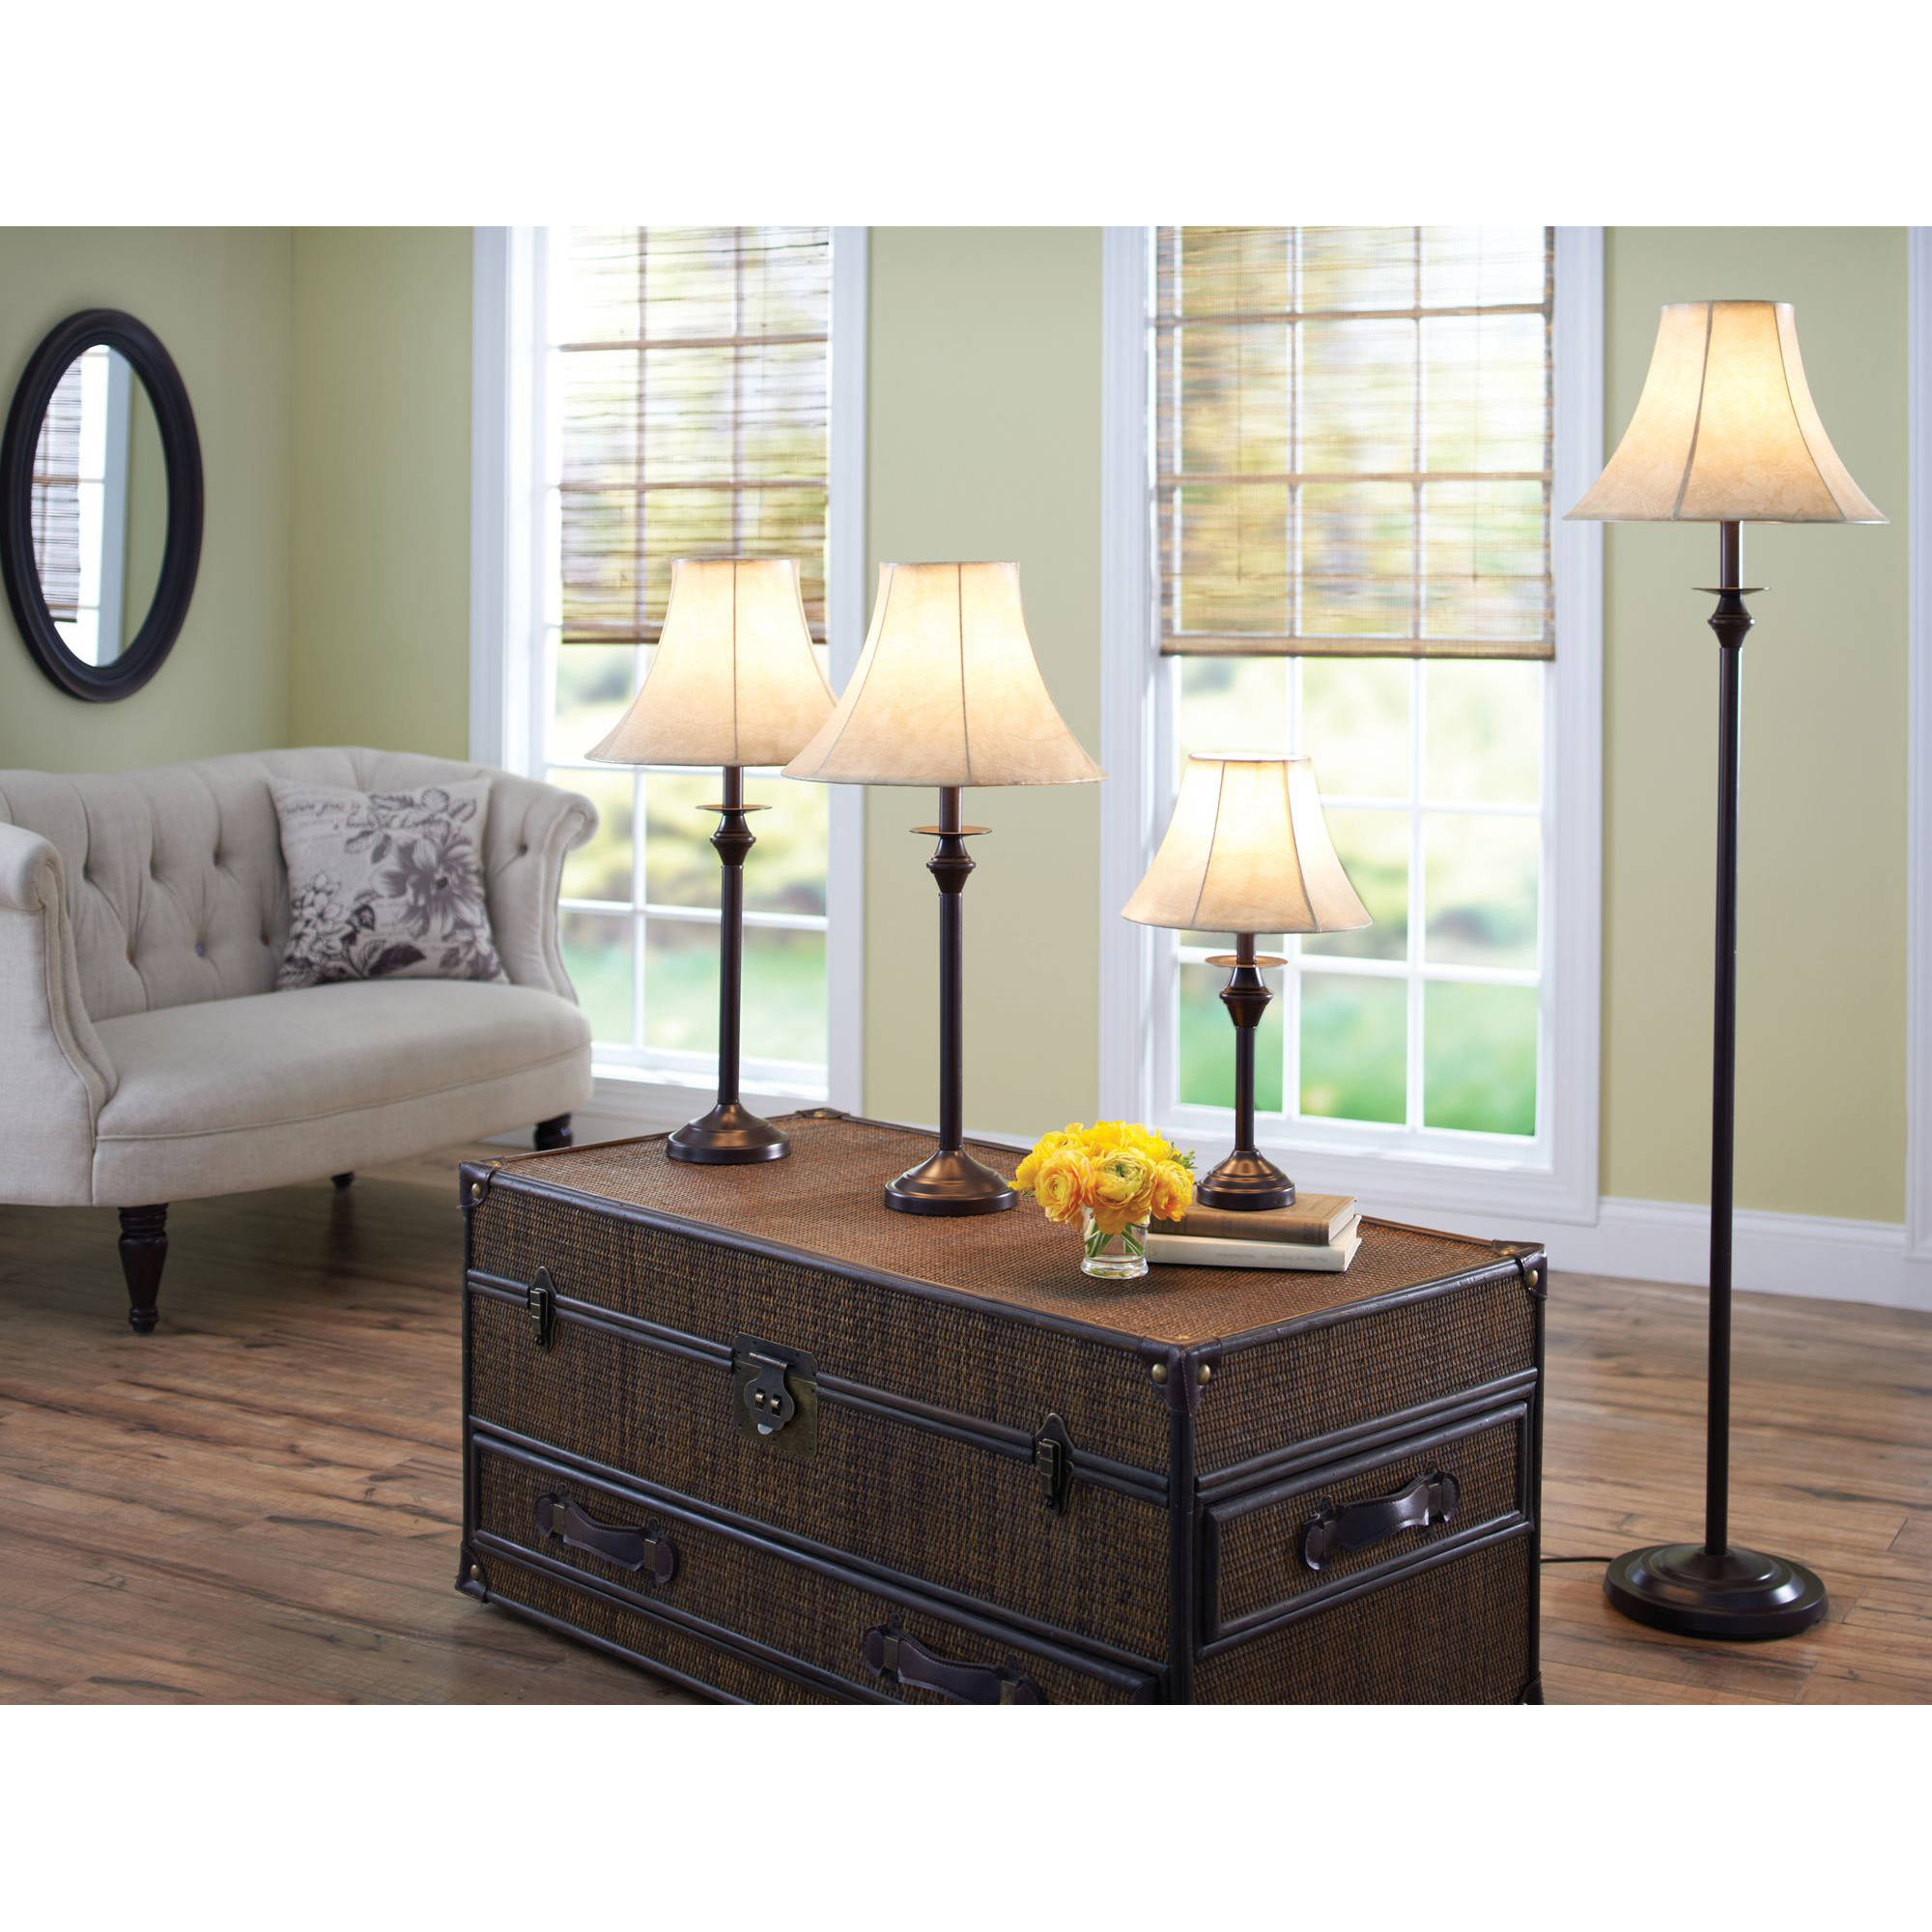 Better Homes and Gardens 4 Piece Lamp Set  Dark Brown Finish   Walmart com. Better Homes and Gardens 4 Piece Lamp Set  Dark Brown Finish